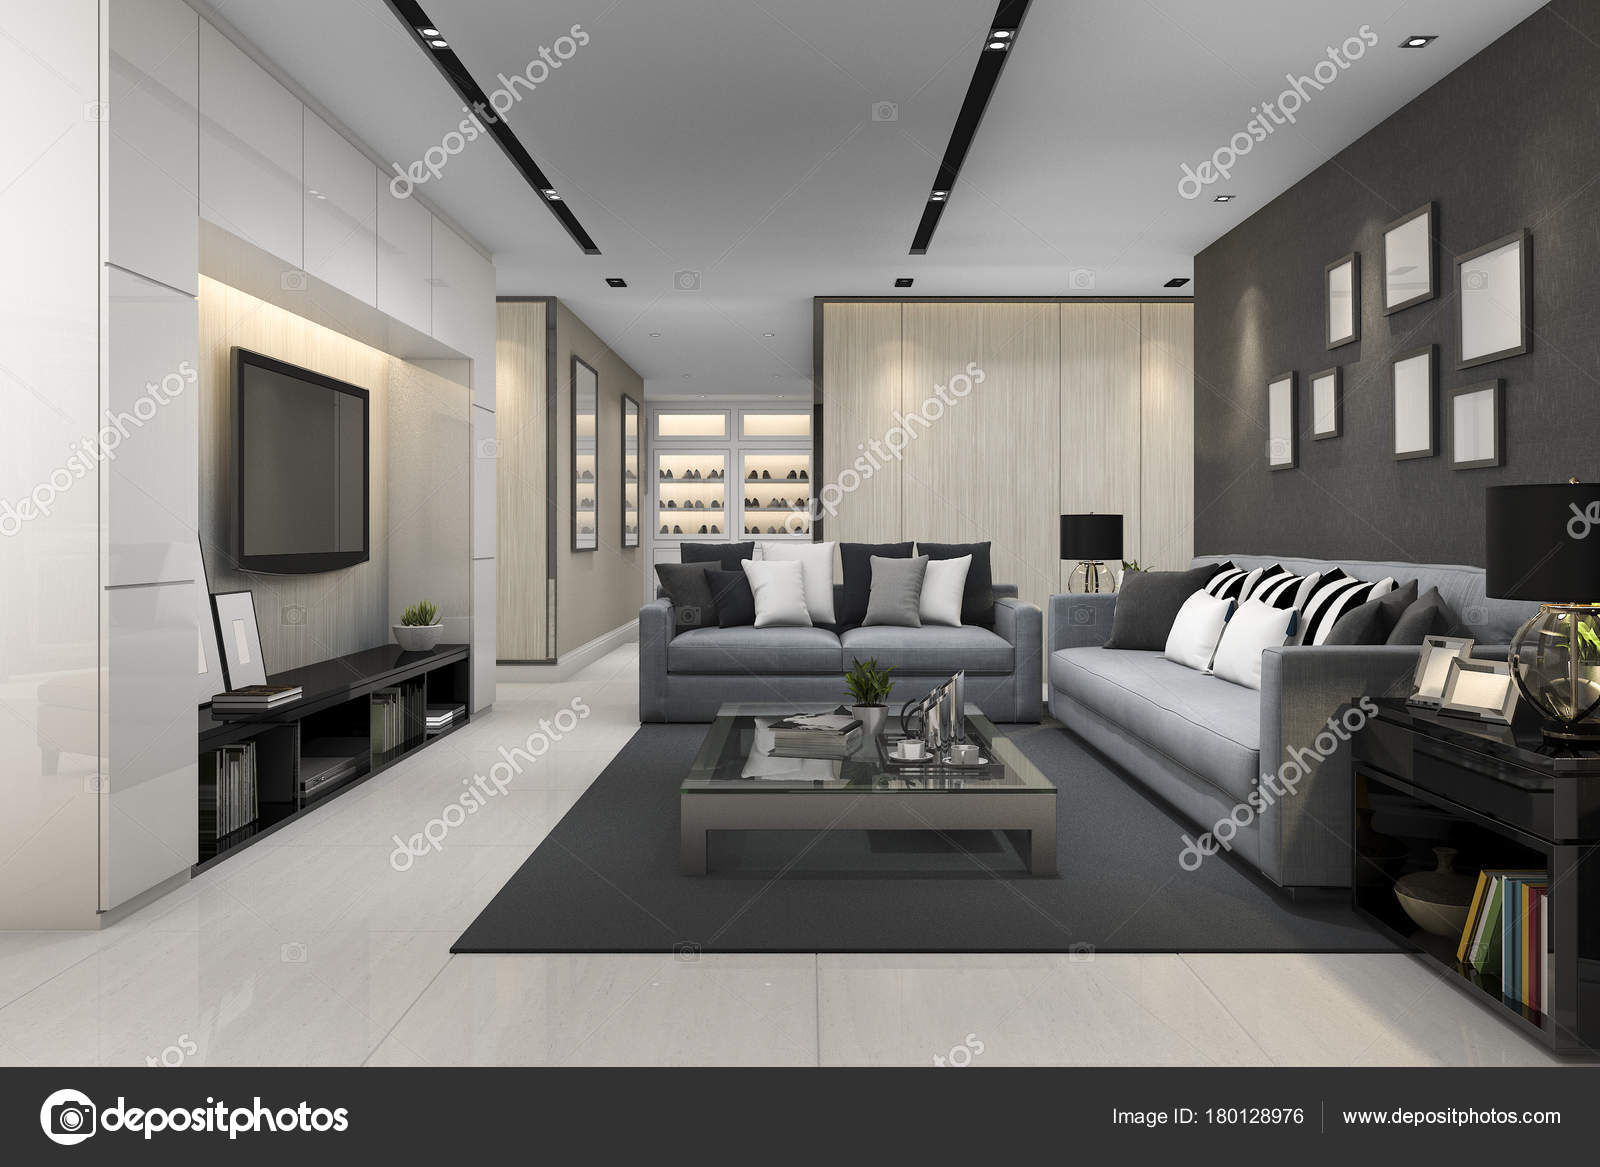 Blue Sofa Modern Grey Living Room Stock Photo Image By Dit26978 180128976